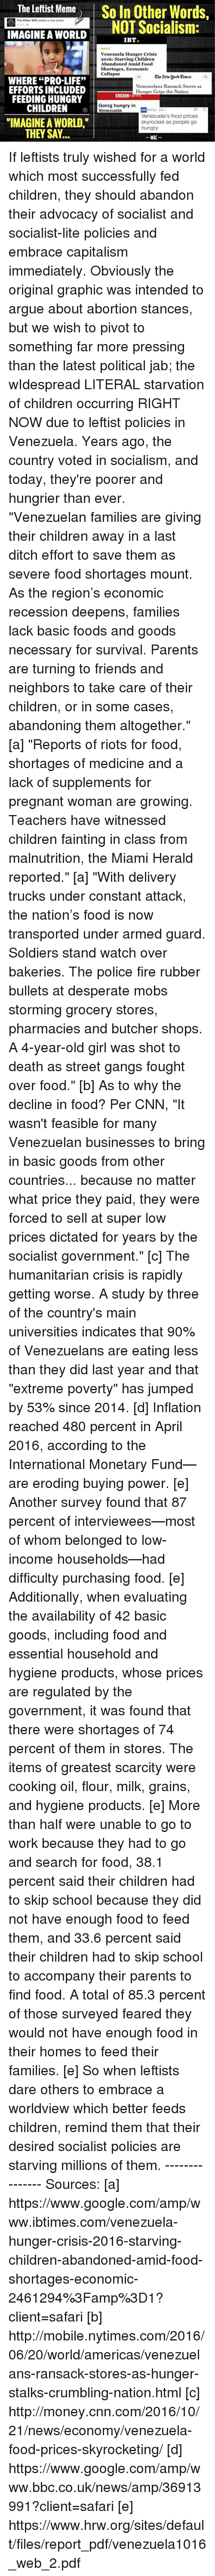 """Starving Children: The Leftist Meme  So In Other Words,  The other 98% added a new photo.  NOT Socialism:  IMAGINE A WORLD  IBT.  Venezuela Hunger Crisis  2016: Starving Children  Abandoned Amid Food  Shortages, Economic  Collapse  Elbe Aenvuork Cimes  WHERE """"PRO-LIFE""""  Venezuelans Ransack Stores as  EFFORTS INCLUDED  Hunger Grips the Nation  BBC  FEEDING HUNGRY  Going hungry in  CHILDREN  Venezuela  ON Money US.  Venezuela's food prices  """"IMAGINE A WORLD.""""  skyrocket as people go  hungry  THEY SAY  WAC If leftists truly wished for a world which most successfully fed children, they should abandon their advocacy of socialist and socialist-lite policies and embrace capitalism immediately. Obviously the original graphic was intended to argue about abortion stances, but we wish to pivot to something far more pressing than the latest political jab; the wIdespread LITERAL starvation of children occurring RIGHT NOW due to leftist policies in Venezuela. Years ago, the country voted in socialism, and today, they're poorer and hungrier than ever.   """"Venezuelan families are giving their children away in a last ditch effort to save them as severe food shortages mount. As the region's economic recession deepens, families lack basic foods and goods necessary for survival. Parents are turning to friends and neighbors to take care of their children, or in some cases, abandoning them altogether."""" [a]  """"Reports of riots for food, shortages of medicine and a lack of supplements for pregnant woman are growing. Teachers have witnessed children fainting in class from malnutrition, the Miami Herald reported."""" [a]  """"With delivery trucks under constant attack, the nation's food is now transported under armed guard. Soldiers stand watch over bakeries. The police fire rubber bullets at desperate mobs storming grocery stores, pharmacies and butcher shops. A 4-year-old girl was shot to death as street gangs fought over food."""" [b]  As to why the decline in food? Per CNN, """"It wasn't feasible for """